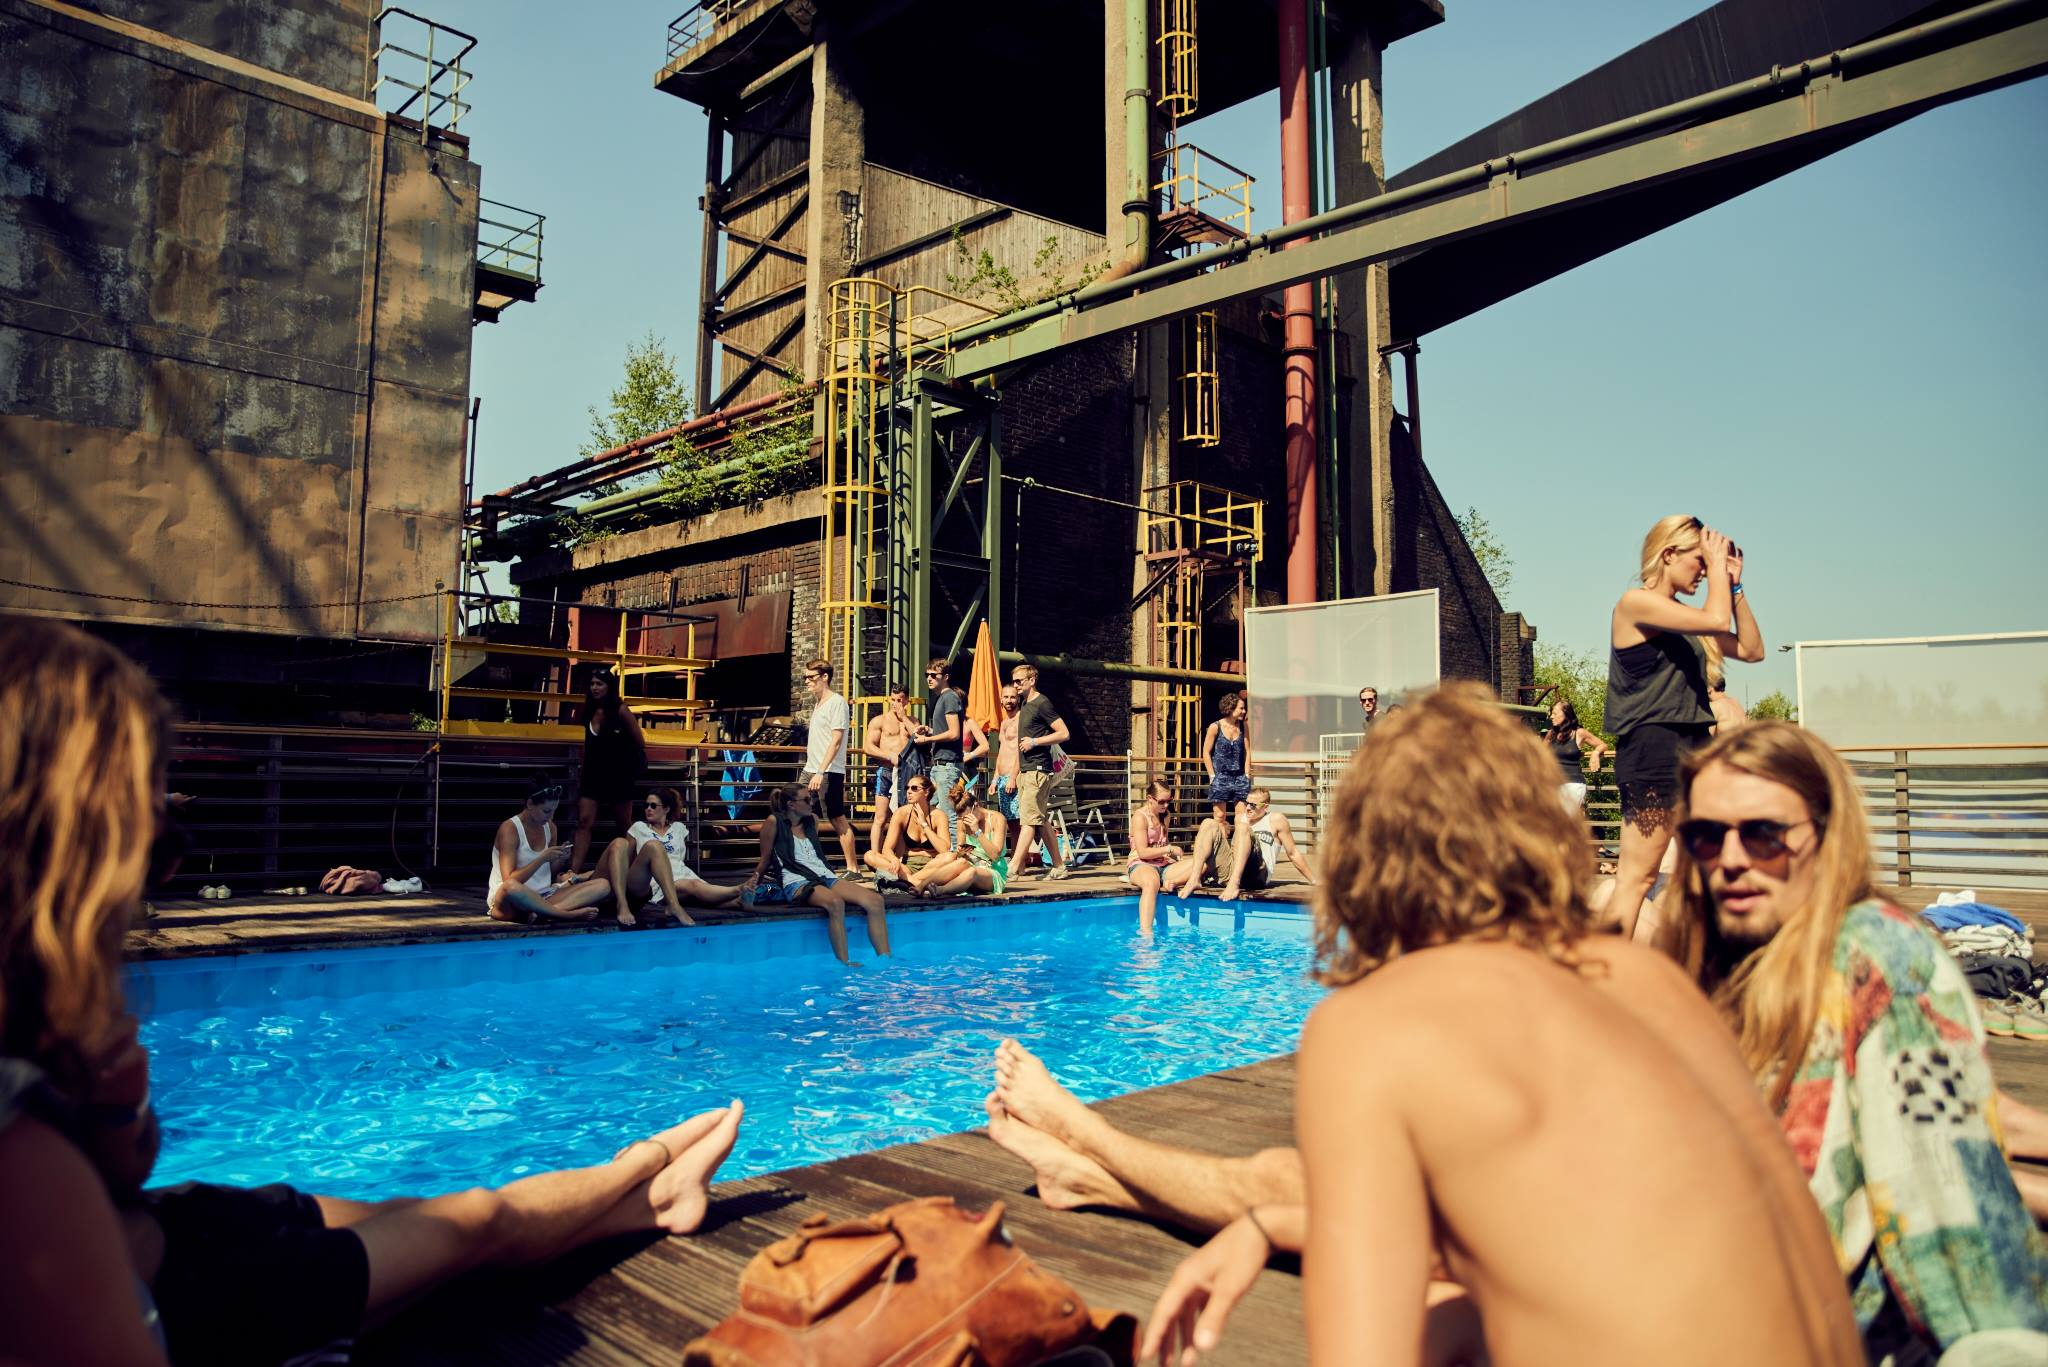 Pool Zeche Zollverein by Henri Vogt